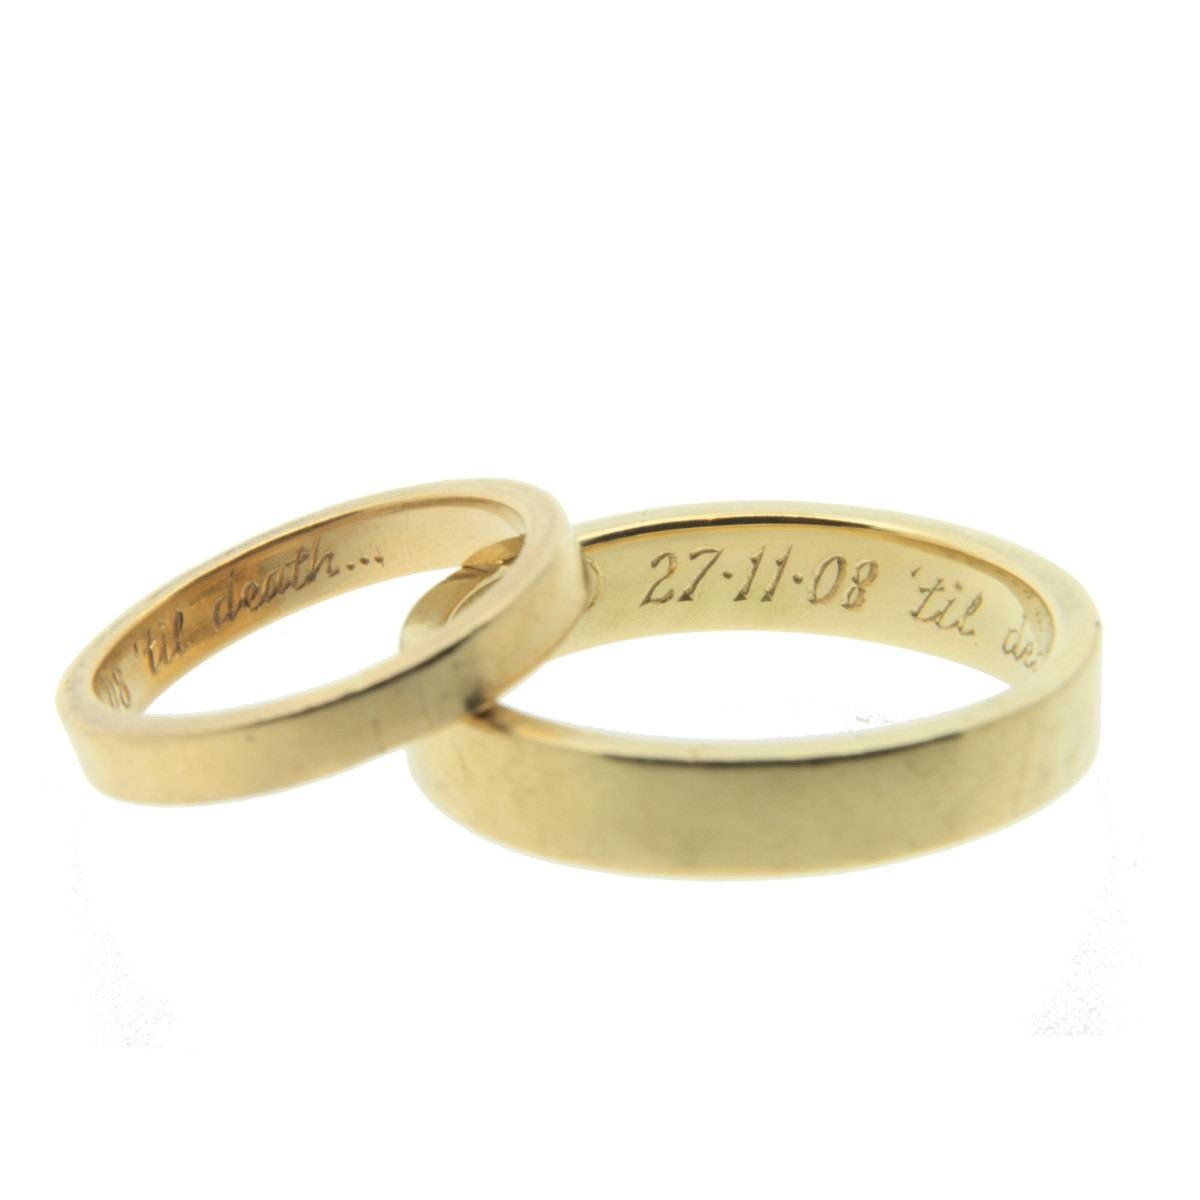 Gold Ring Engraving With Regard To Engravings On Wedding Rings (View 3 of 15)